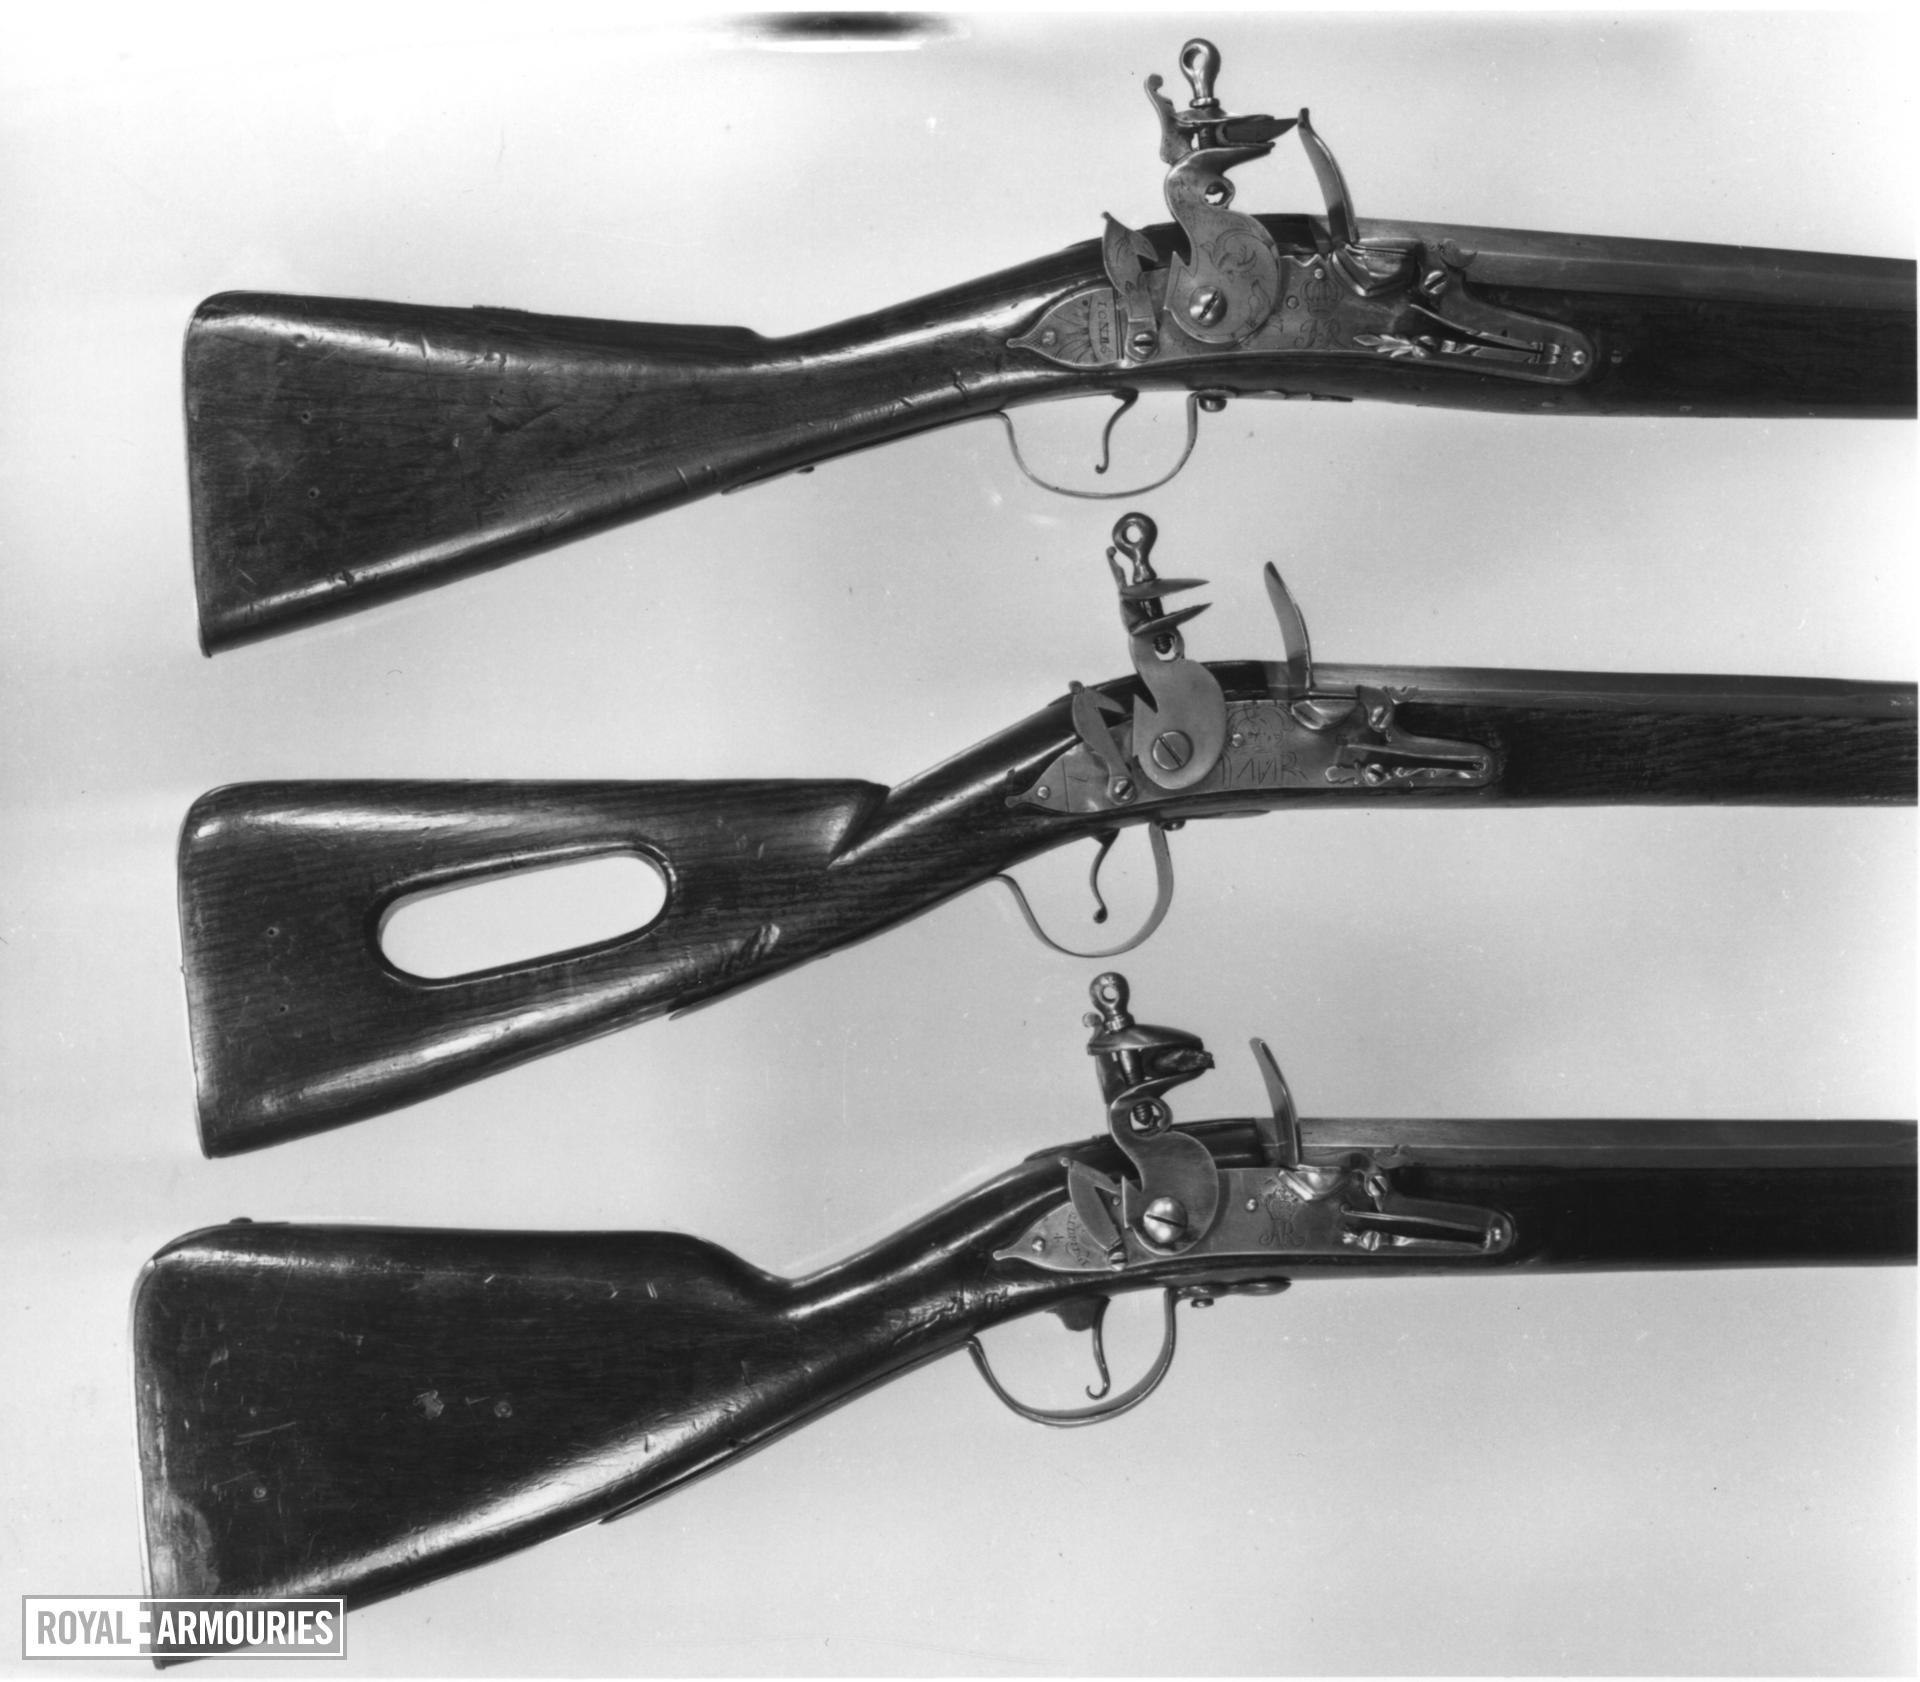 Flintlock muzzle-loading military musket - James II Land Service